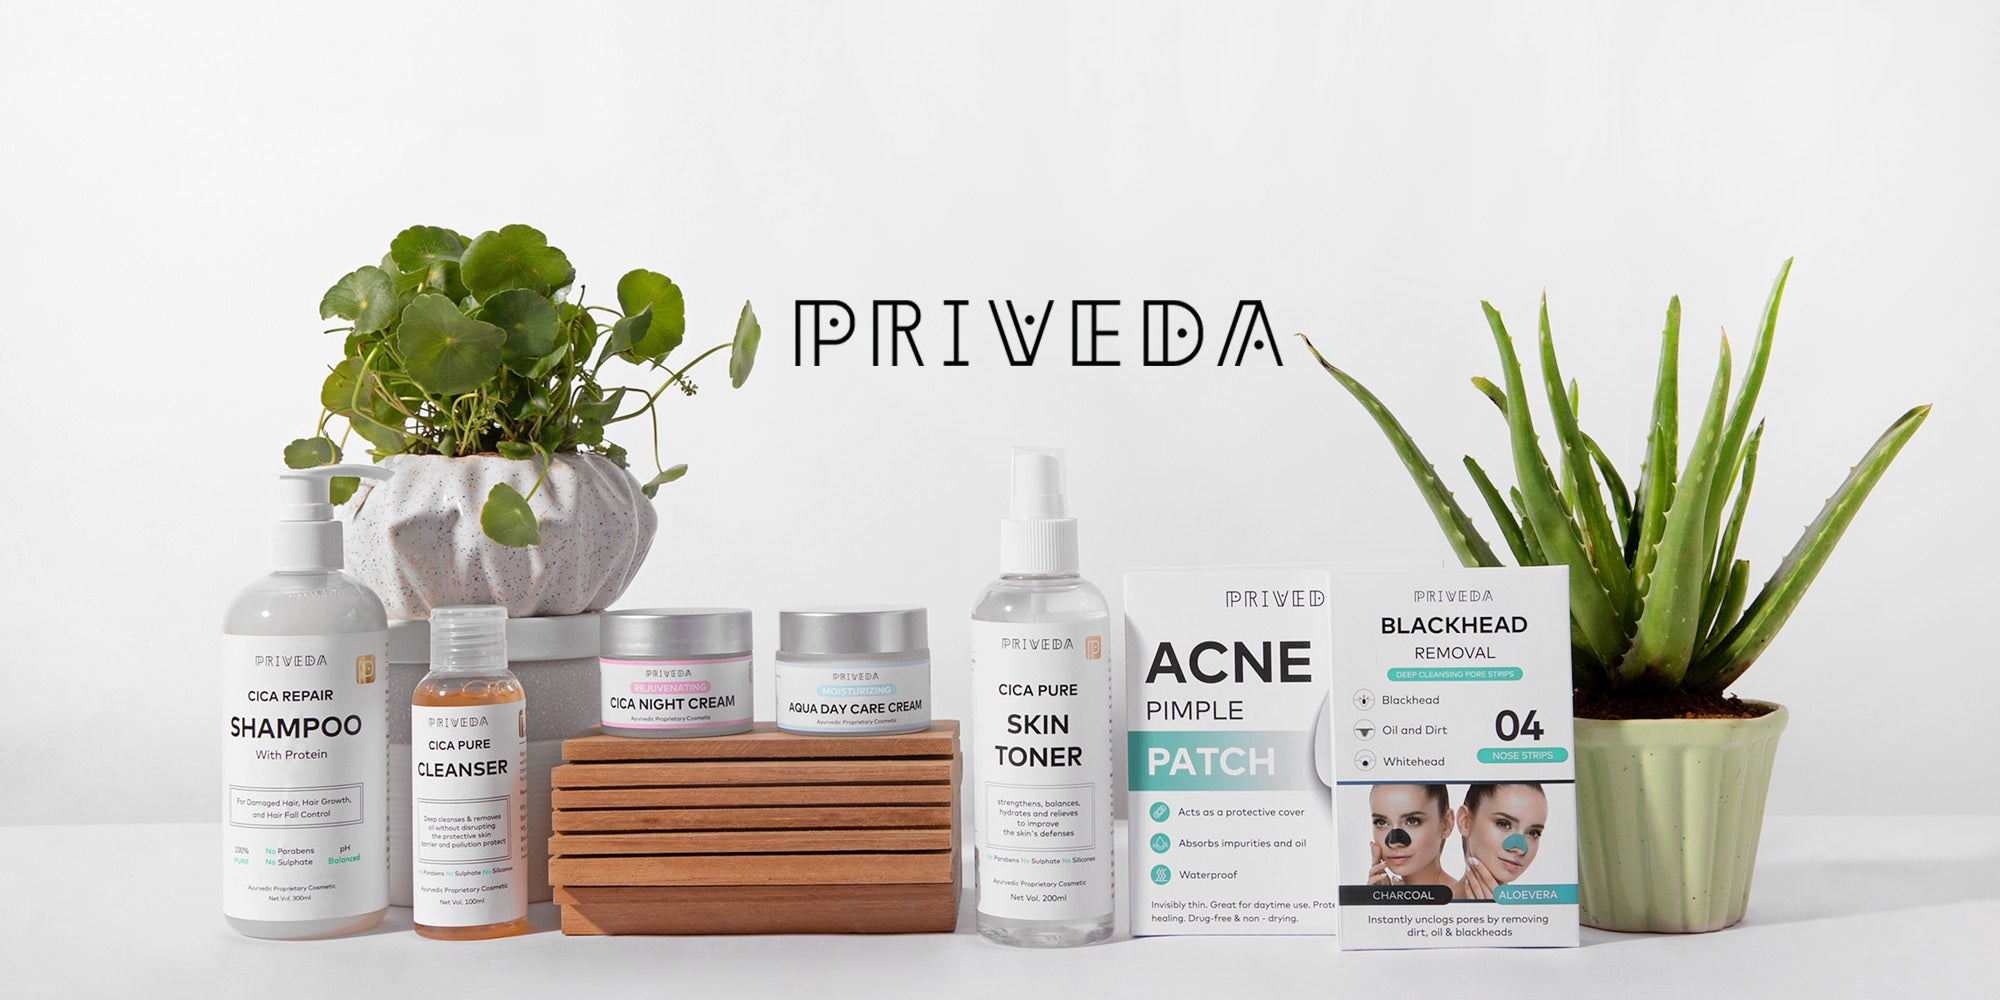 PRIVEDA products